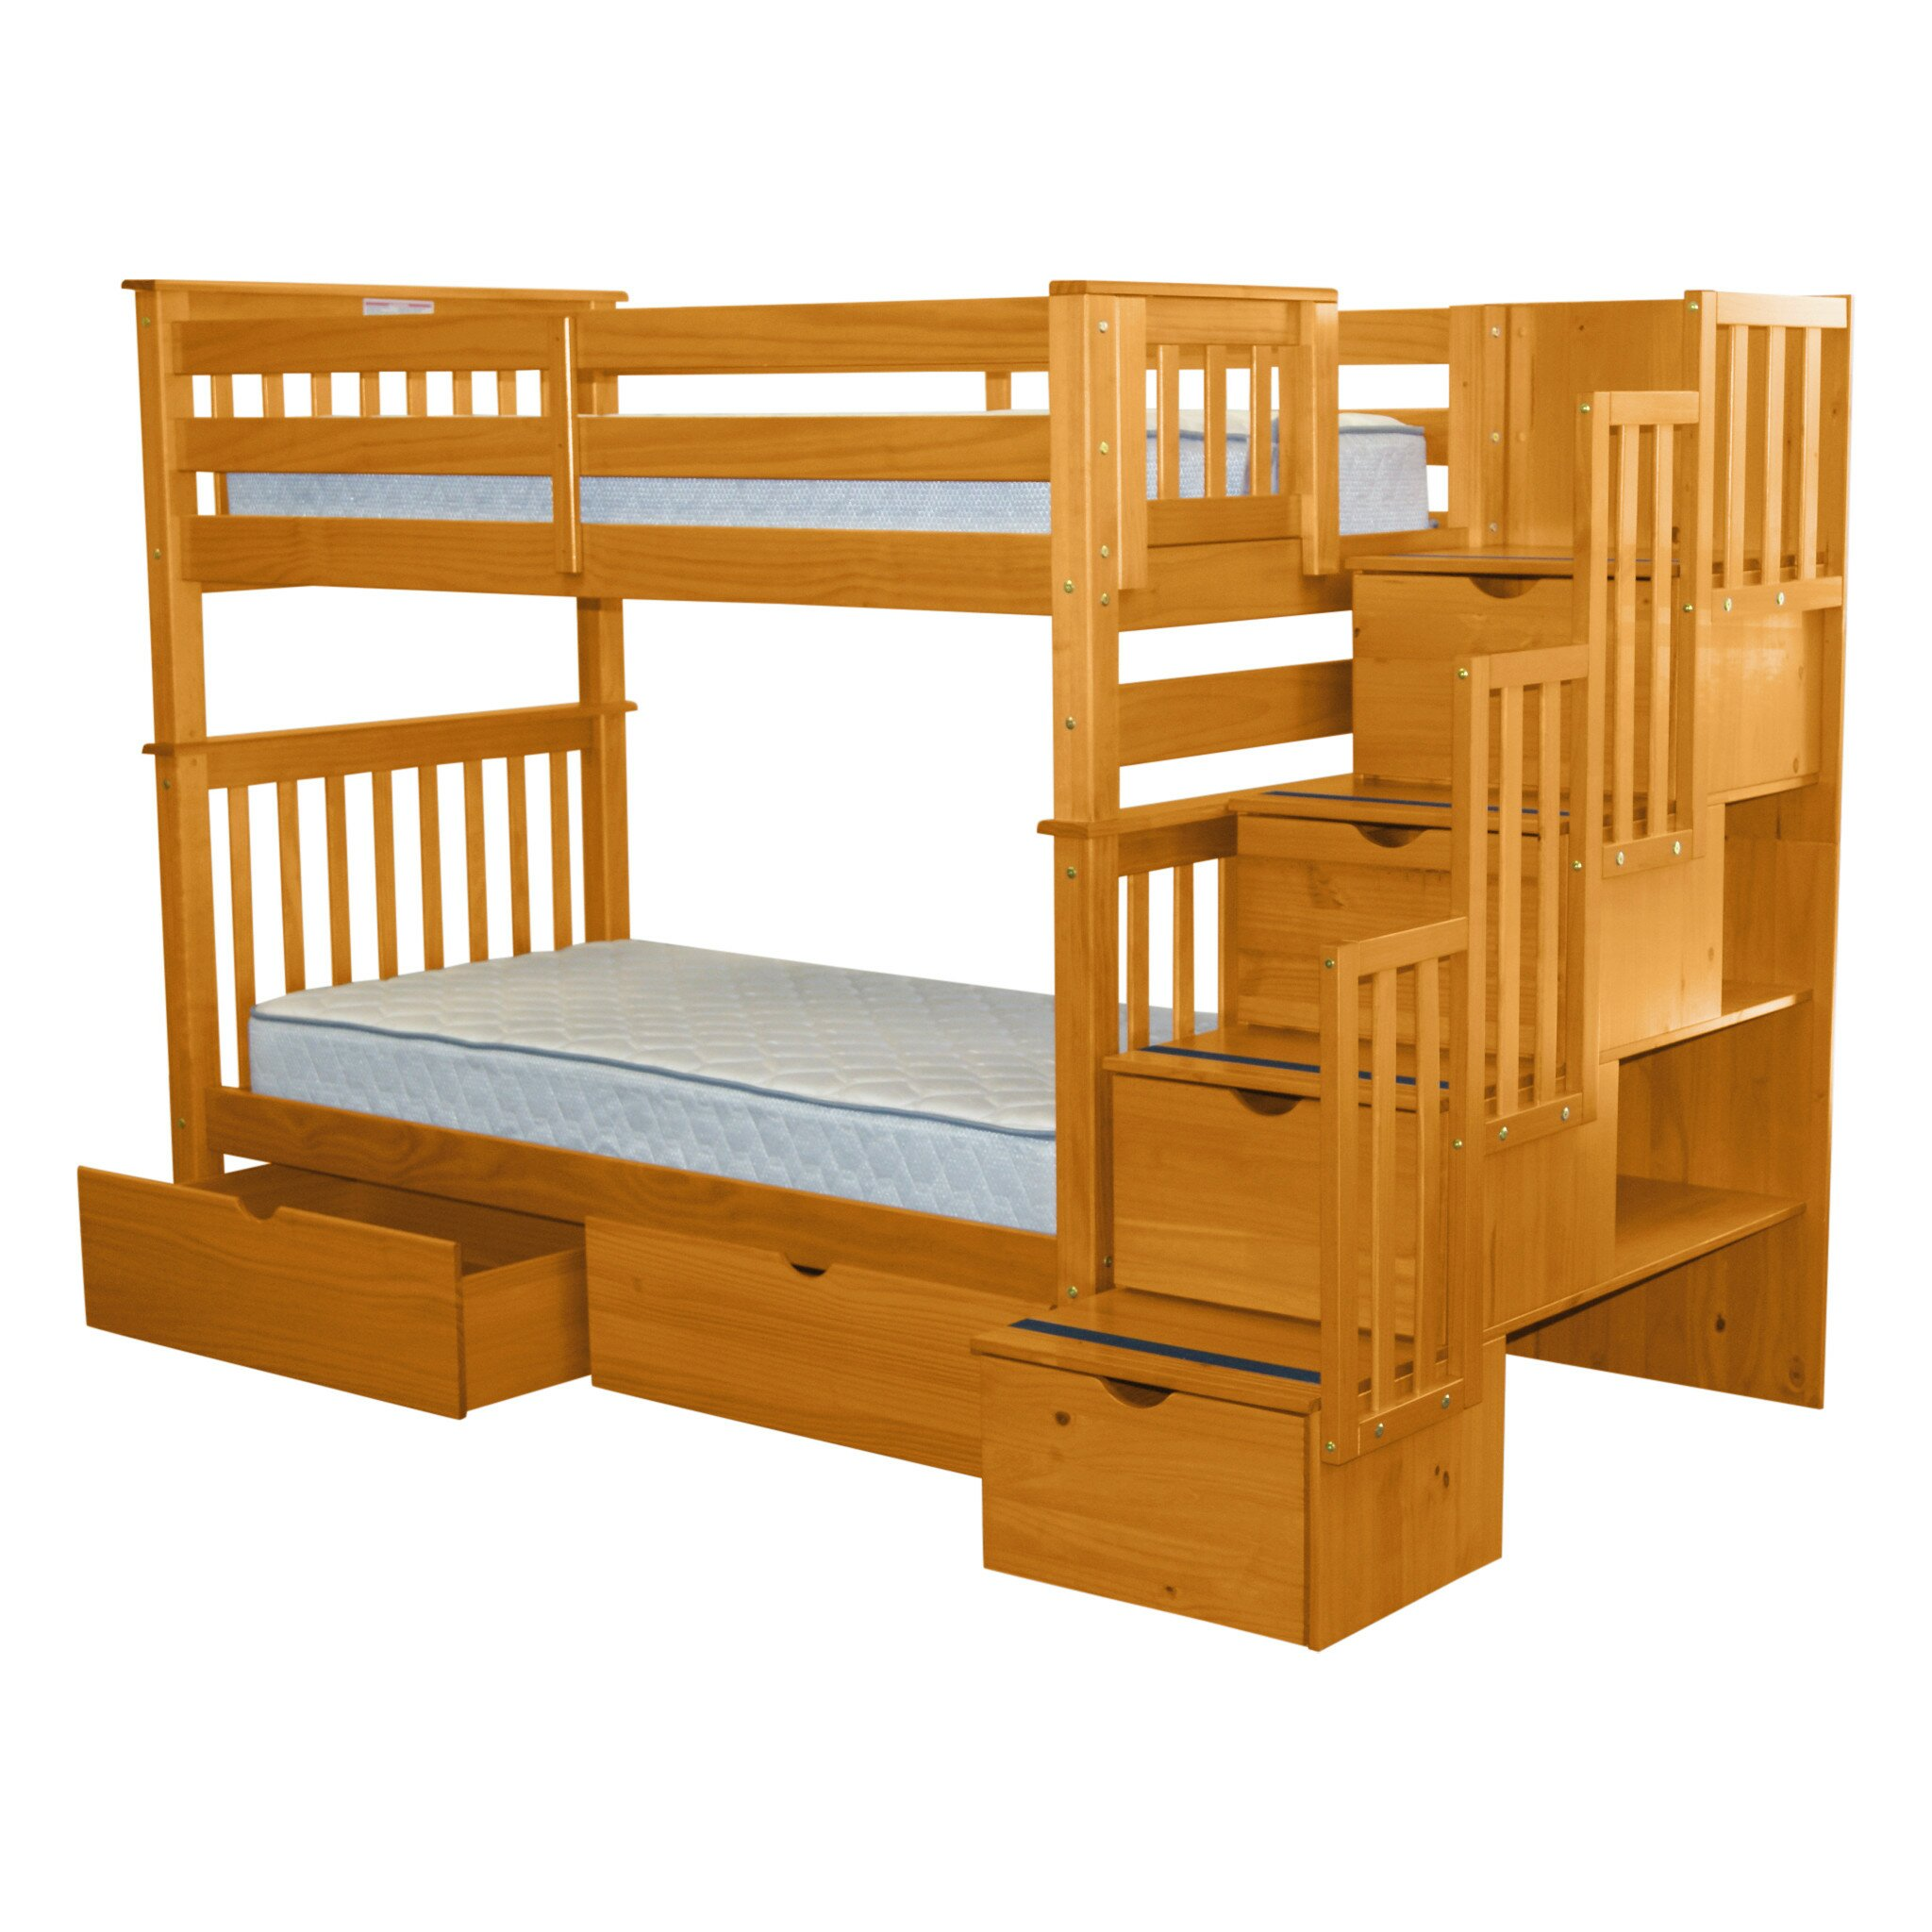 Bedz King Twin Bunk Bed With Storage Reviews Wayfair